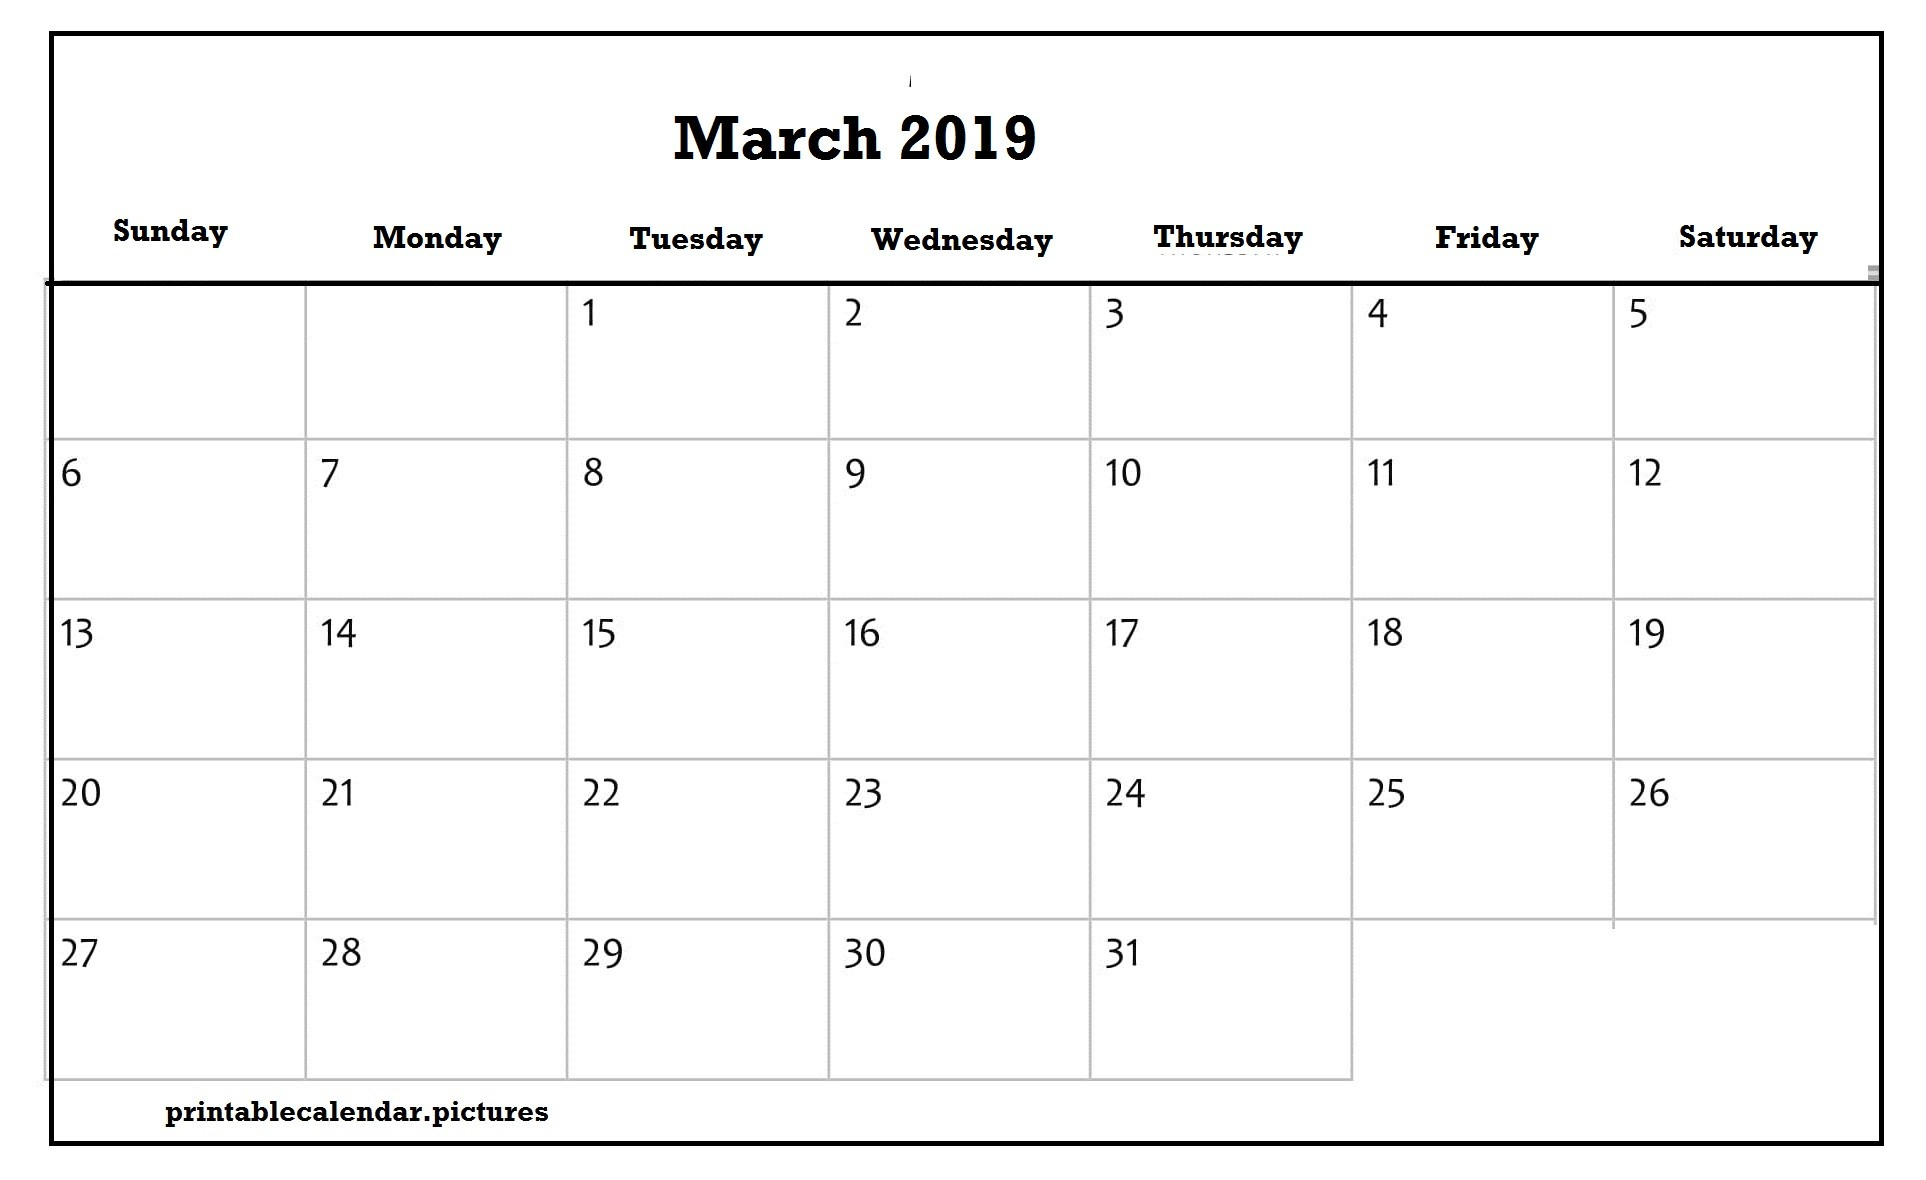 March Holiday Calendar 2019 Más Reciente March 2019 Calendar Printable Vartical and Horizontal Layout Of March Holiday Calendar 2019 Mejores Y Más Novedosos March 2019 Calendar Printable with Holidays